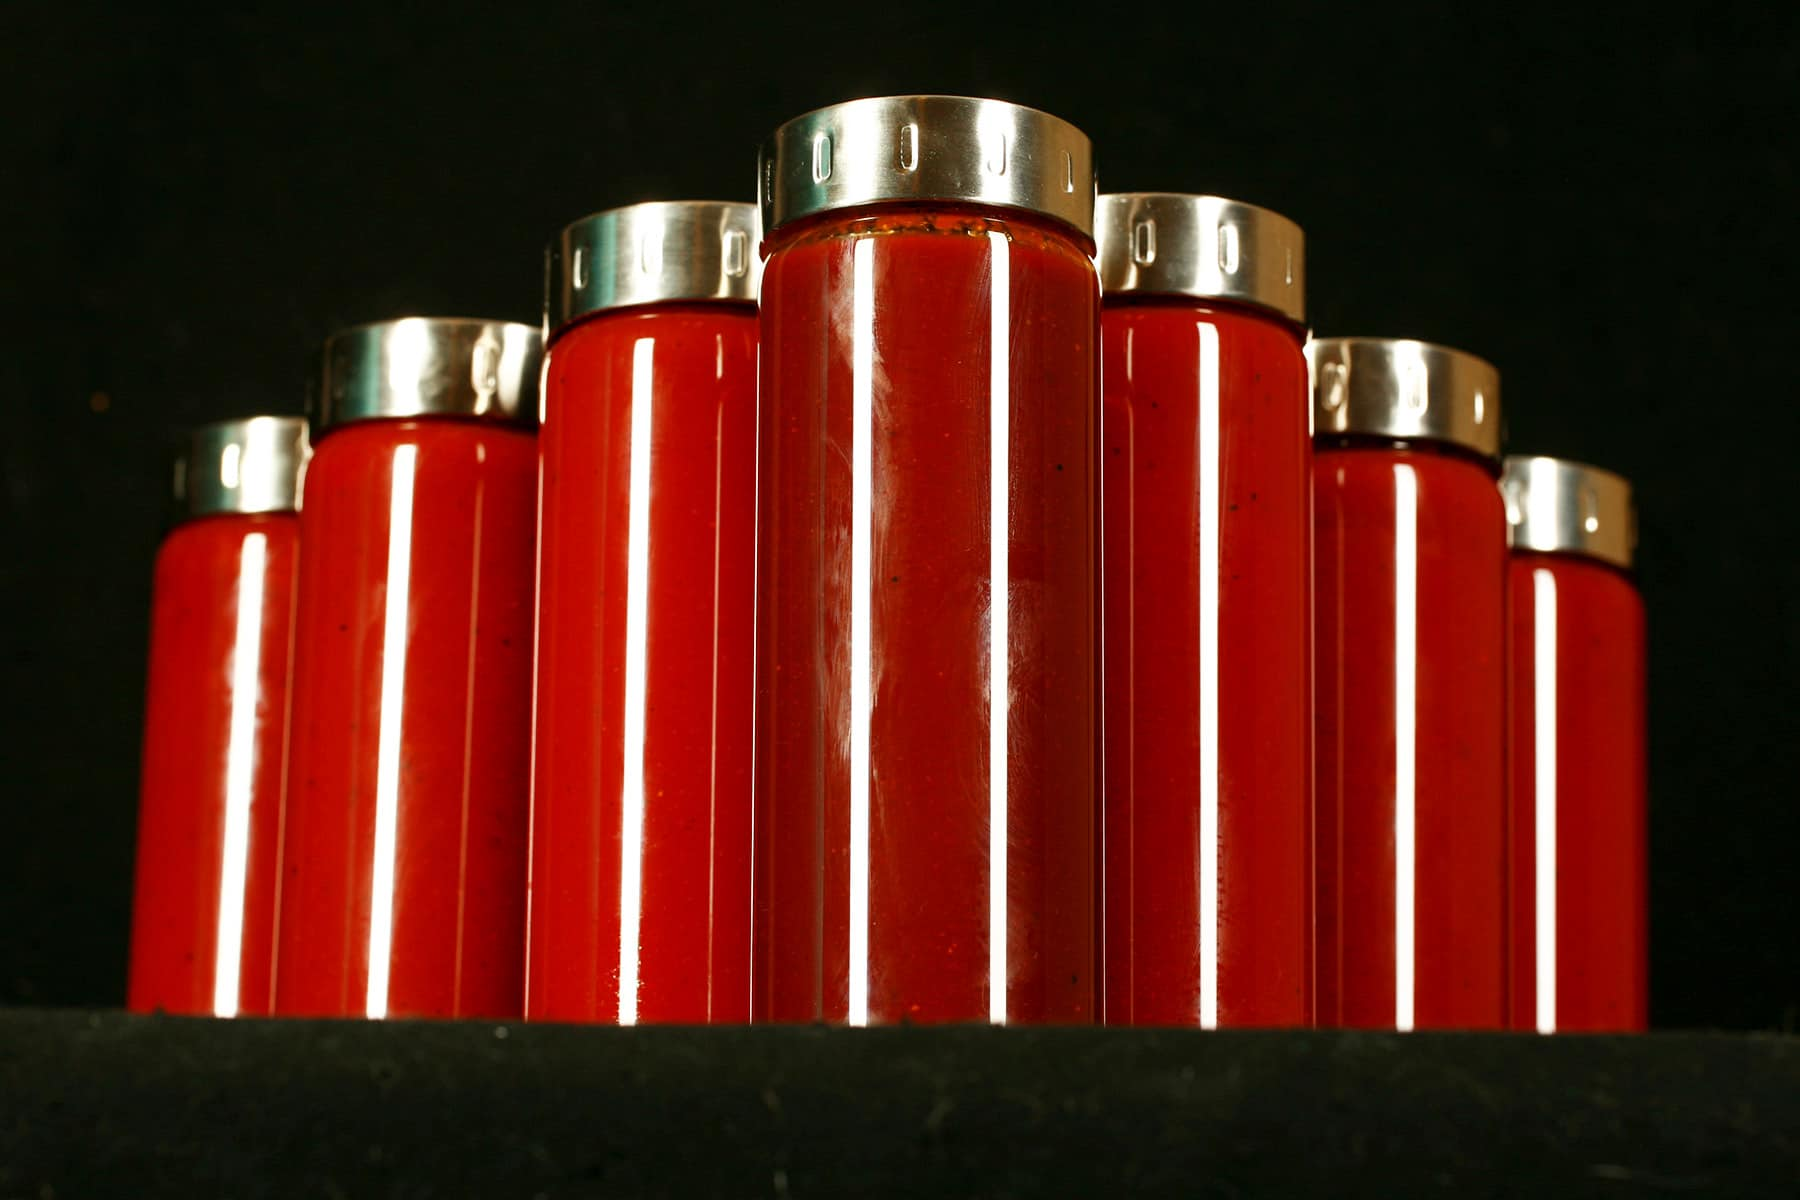 Seven tall, slender glass bottles filled with varying shades of dark red BBQ sauce - Replica Diana Sauce. The jars all have matching stainless lids, and are arranged in a V formation.